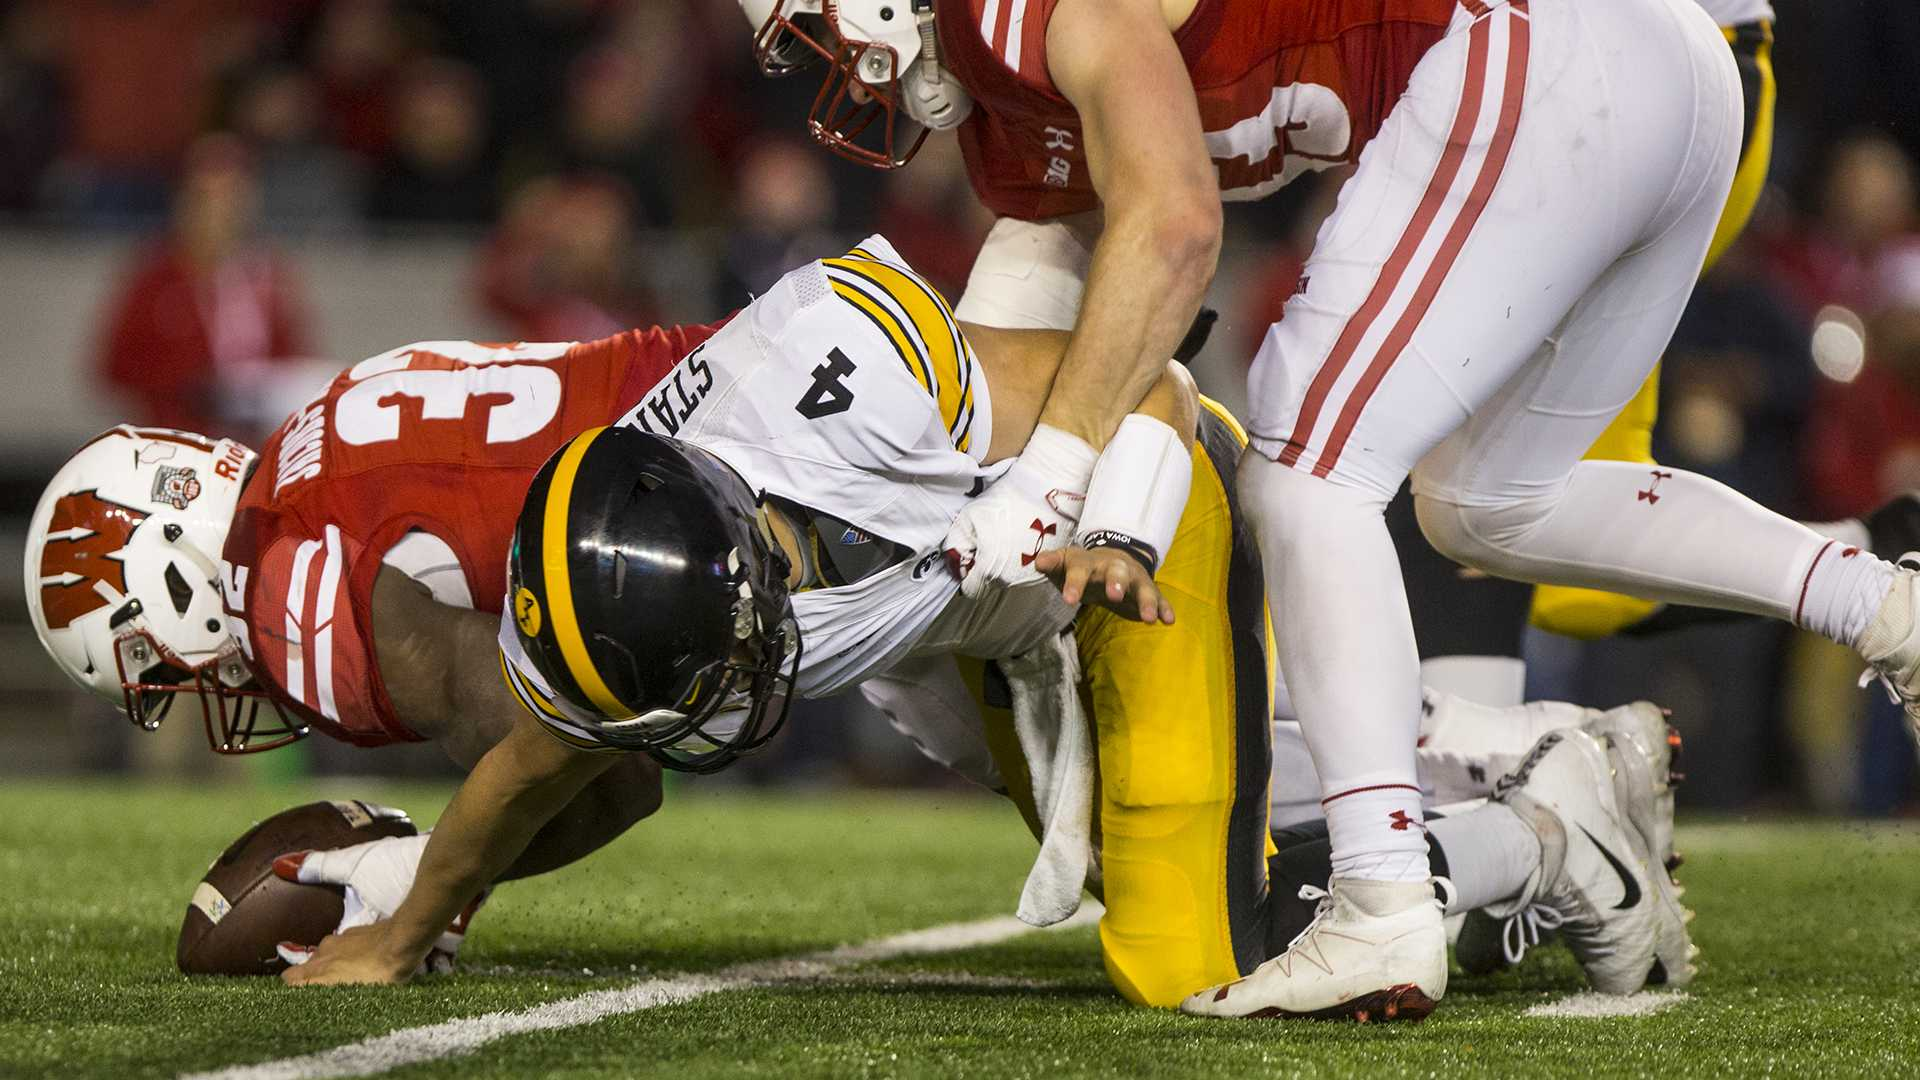 Iowa quarterback Nate Stanley is hit after fumbling the ball during Iowa's game against Wisconsin at Camp Randall Stadium on Saturday, Nov. 11, 2017. The badgers defeated the Hawkeyes 38-14. (Nick Rohlman/The Daily Iowan)